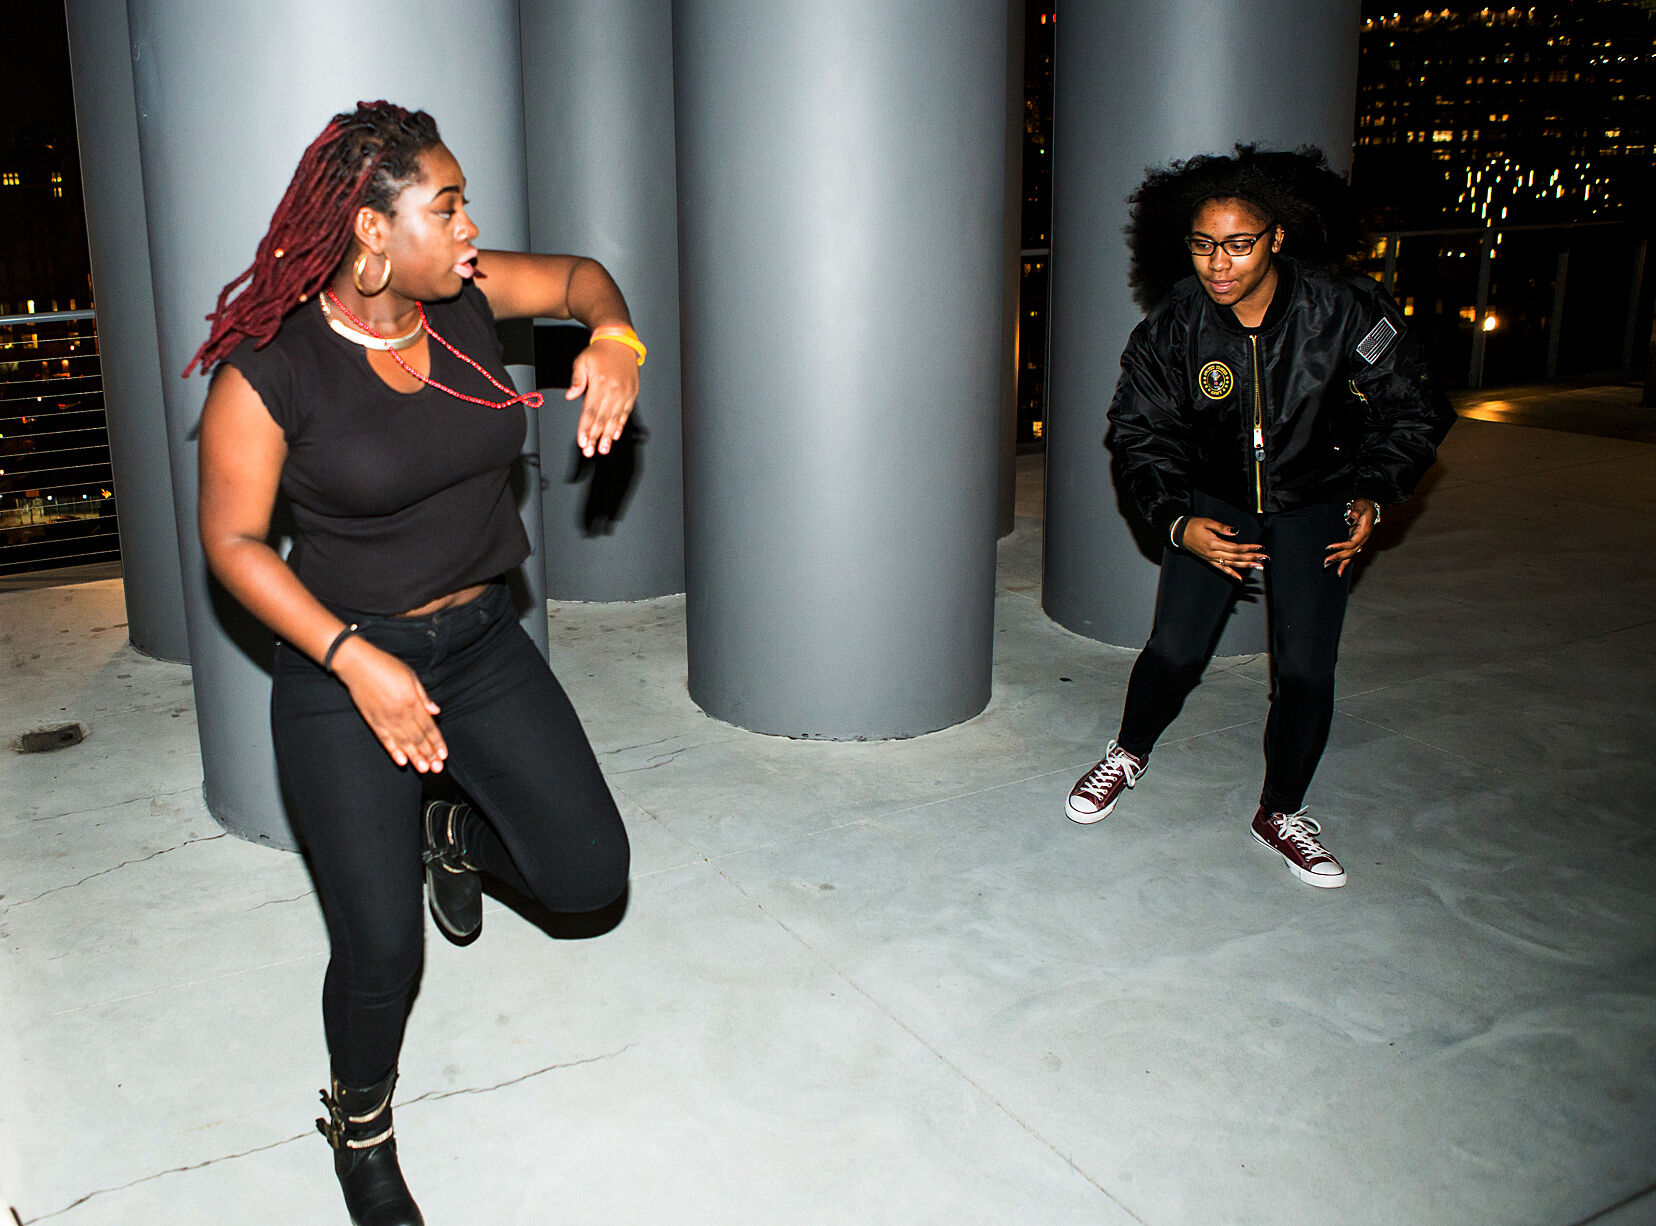 Two teens dance in a performance piece about Black Lives Matter.